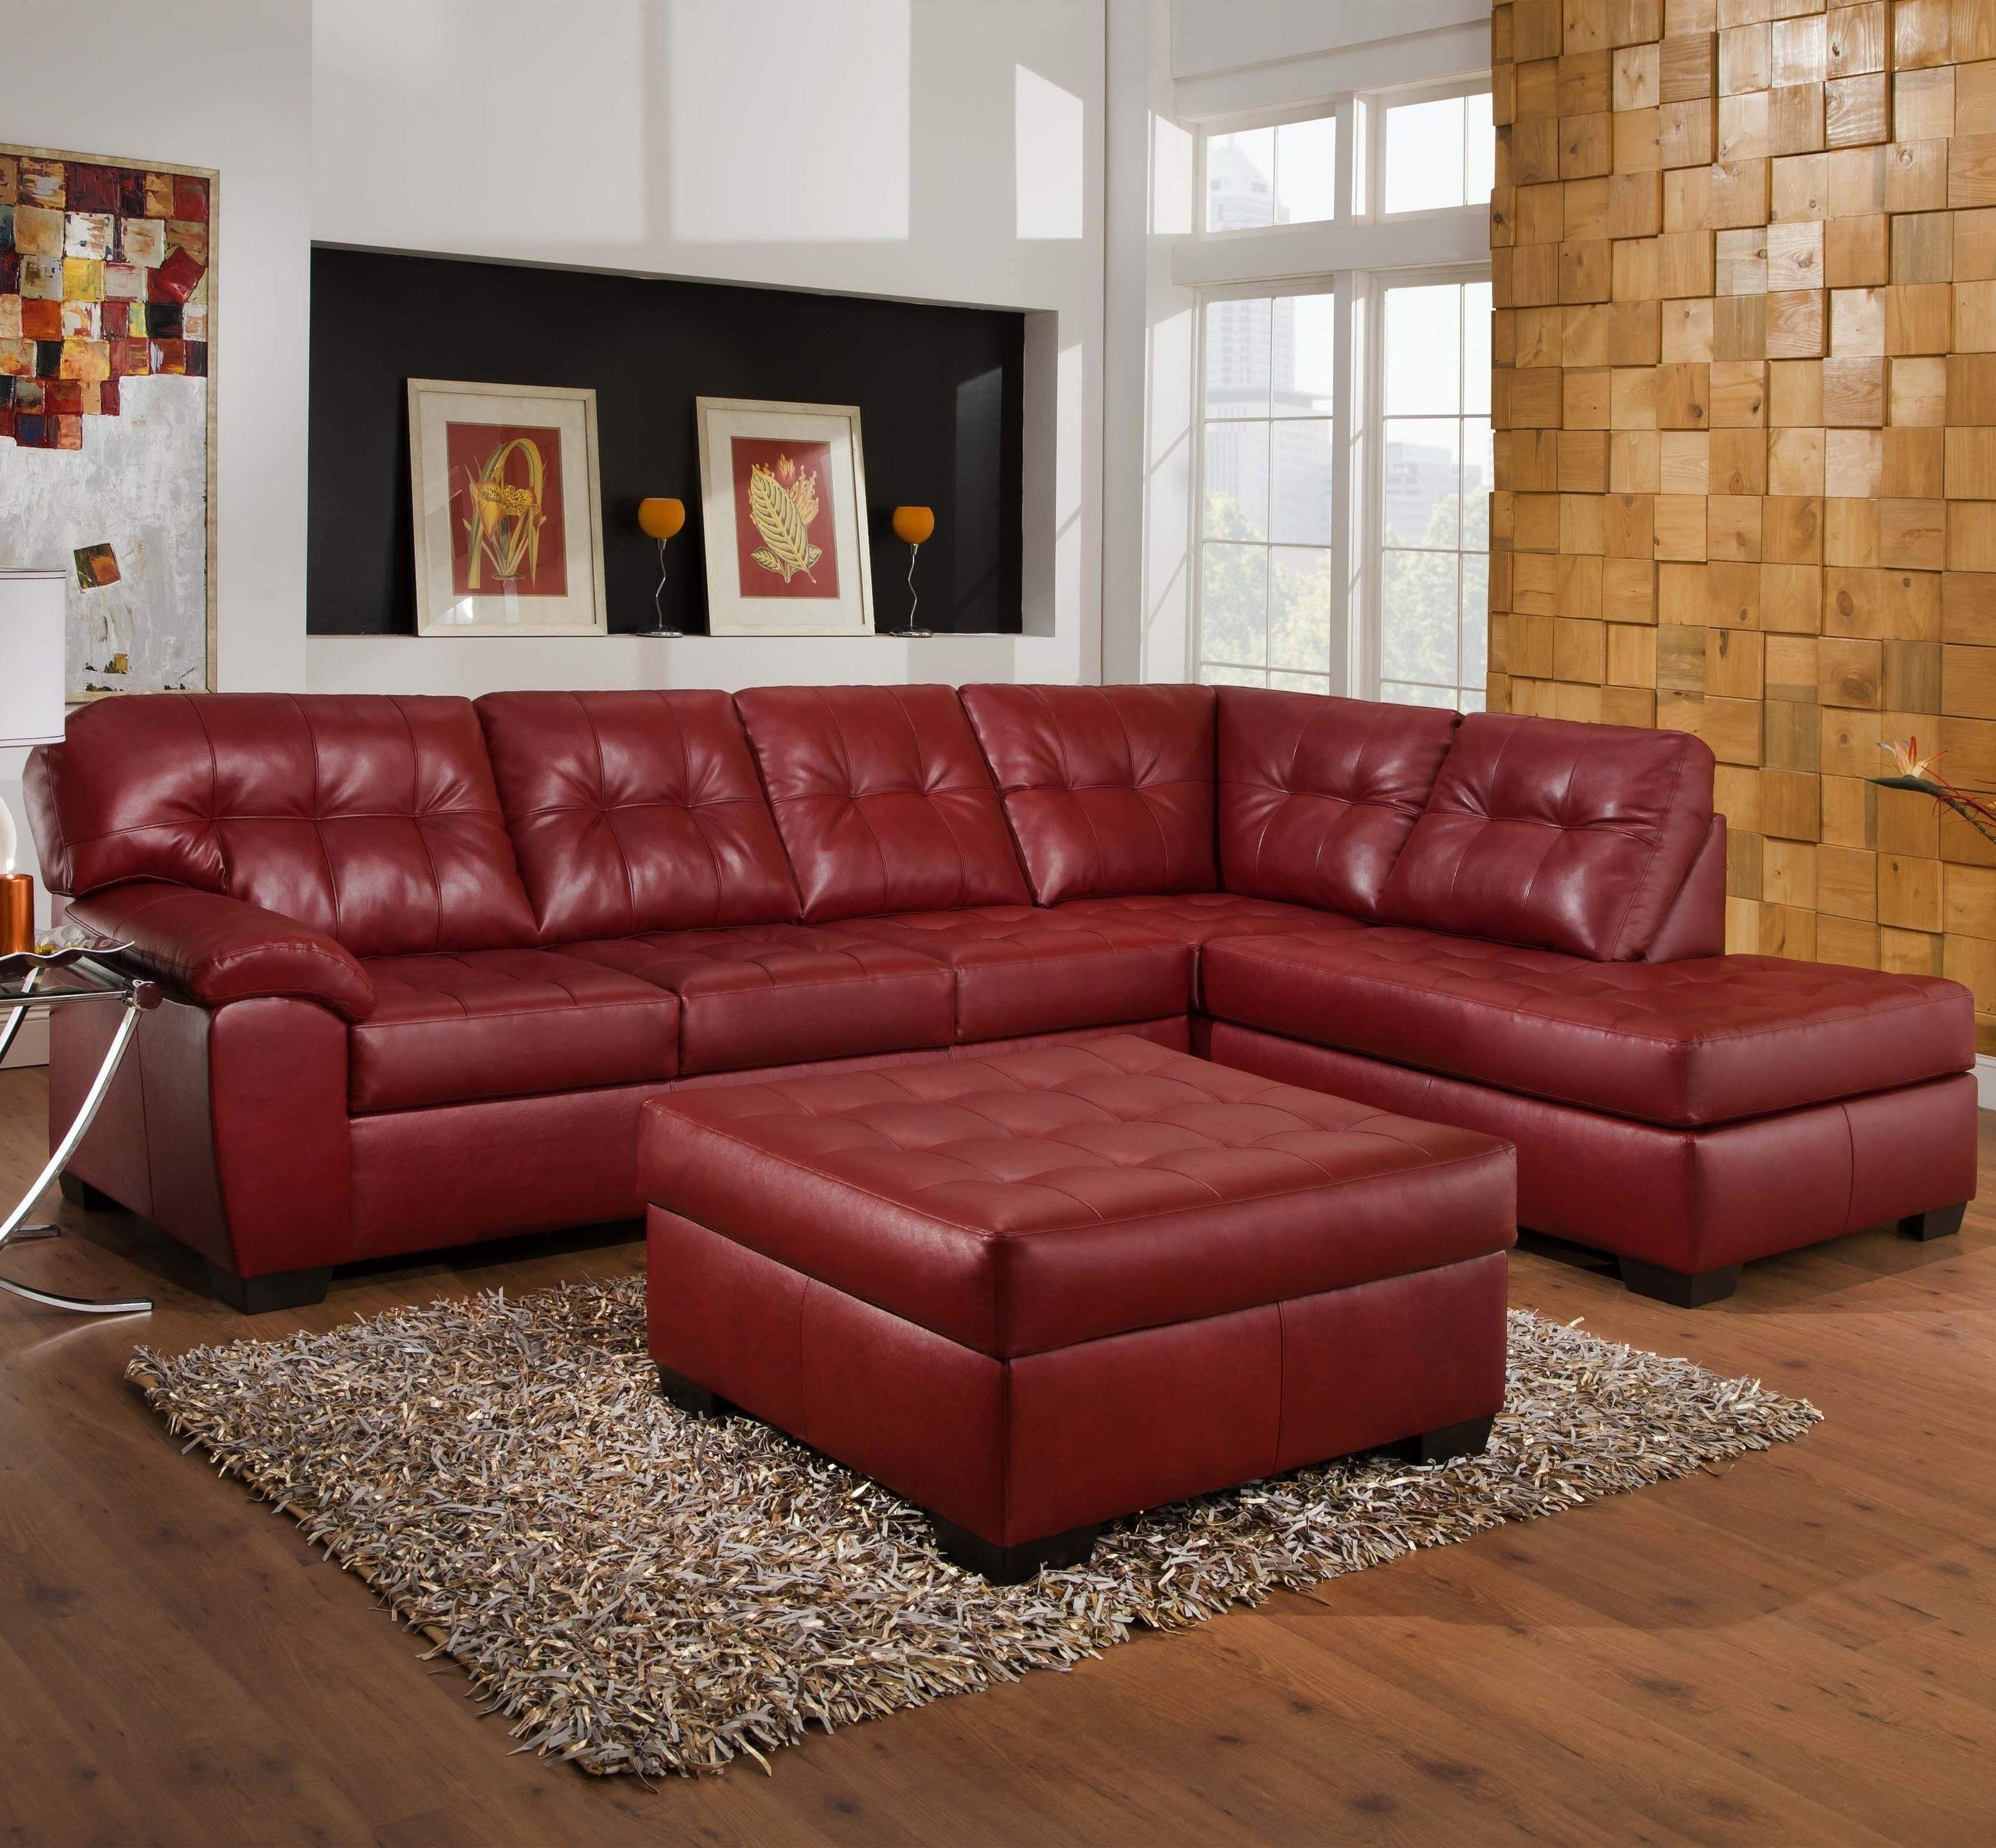 9569 2 Piece Sectional With Tufted Seats & Backsimmons inside Red Sectional Sofas